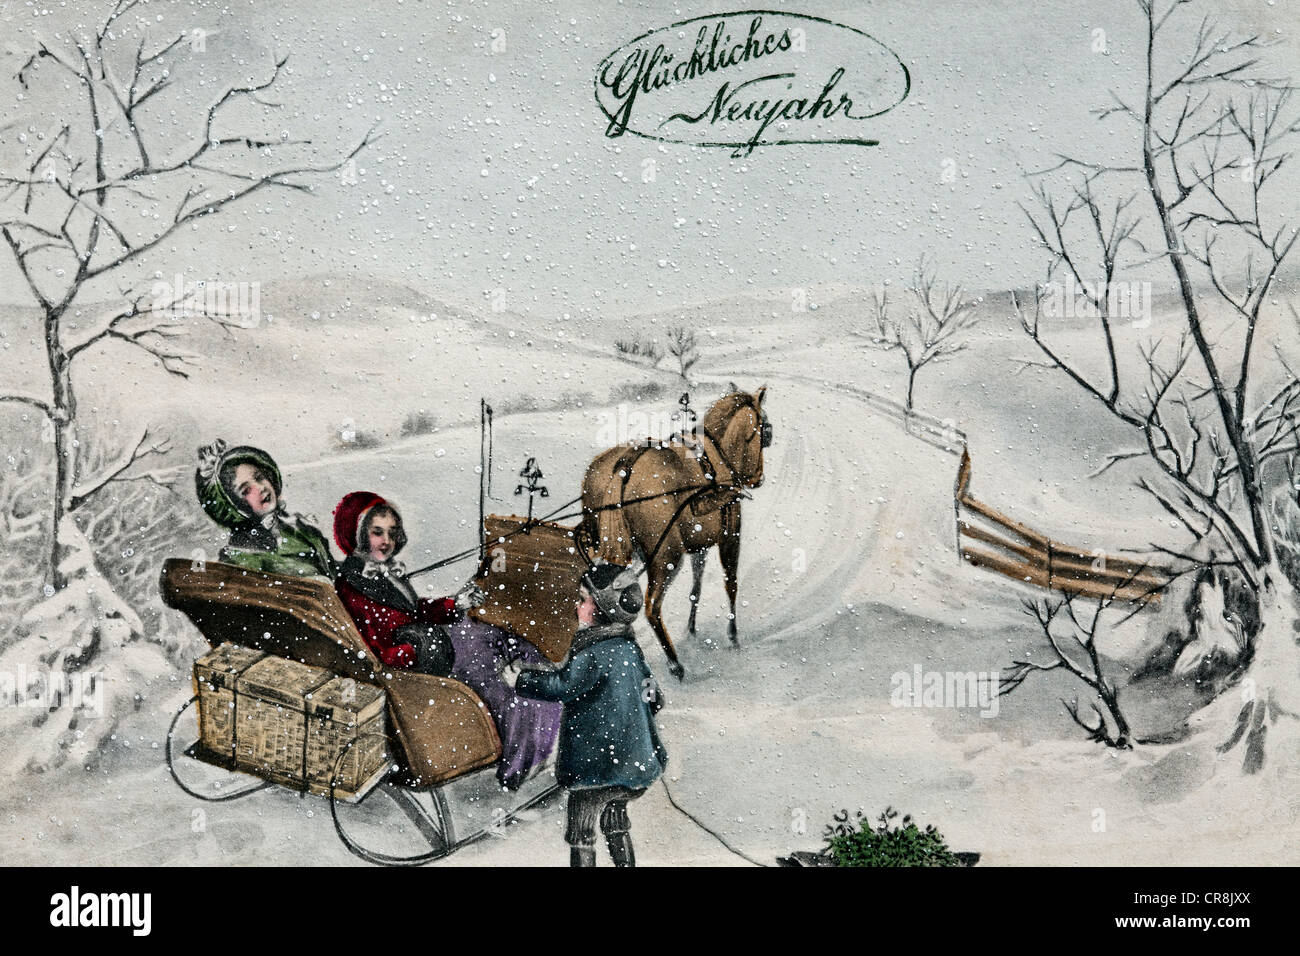 Happy New Year, children taking a sleigh ride in the snow, historical postcard, circa 1900 - Stock Image